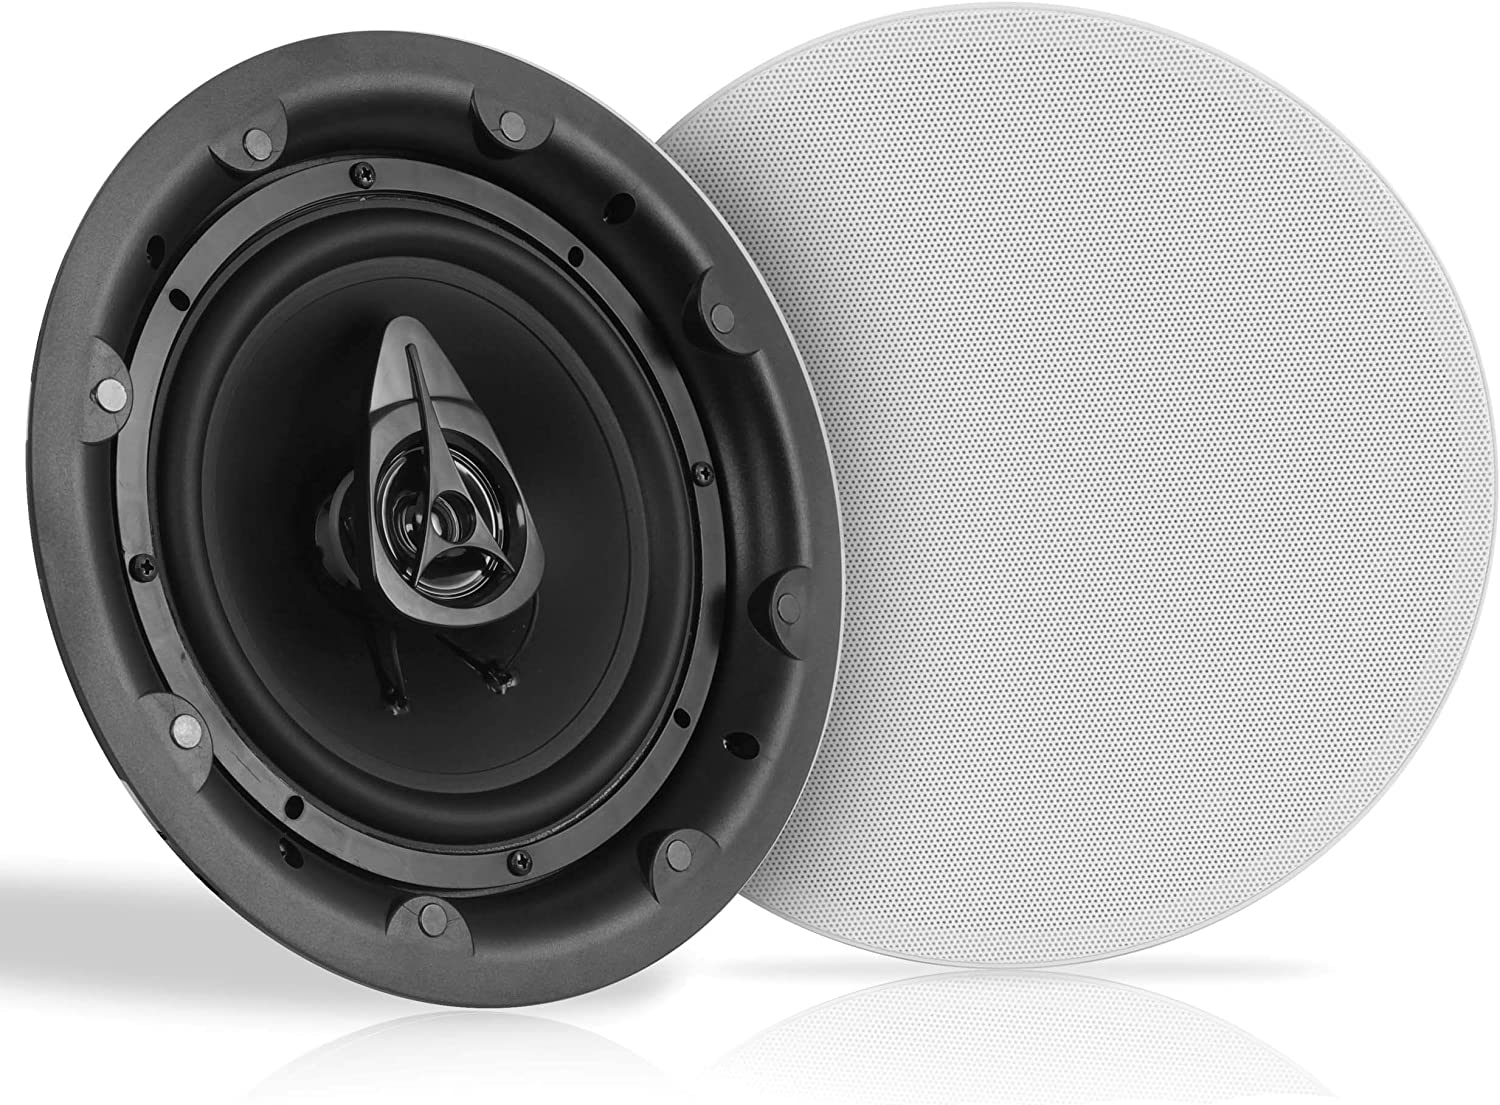 B07G7LWQ1X Ceiling and Wall Mount Speaker - 8 Dual 2-Way Audio Stereo Sound Subwoofer Sound with Tweeter, 600 Watts, In-Wall & In-Ceiling Flush Mount for Home Surround System - 1 Pair - Pyle PWRC83 (White) 81mBGboYk-L